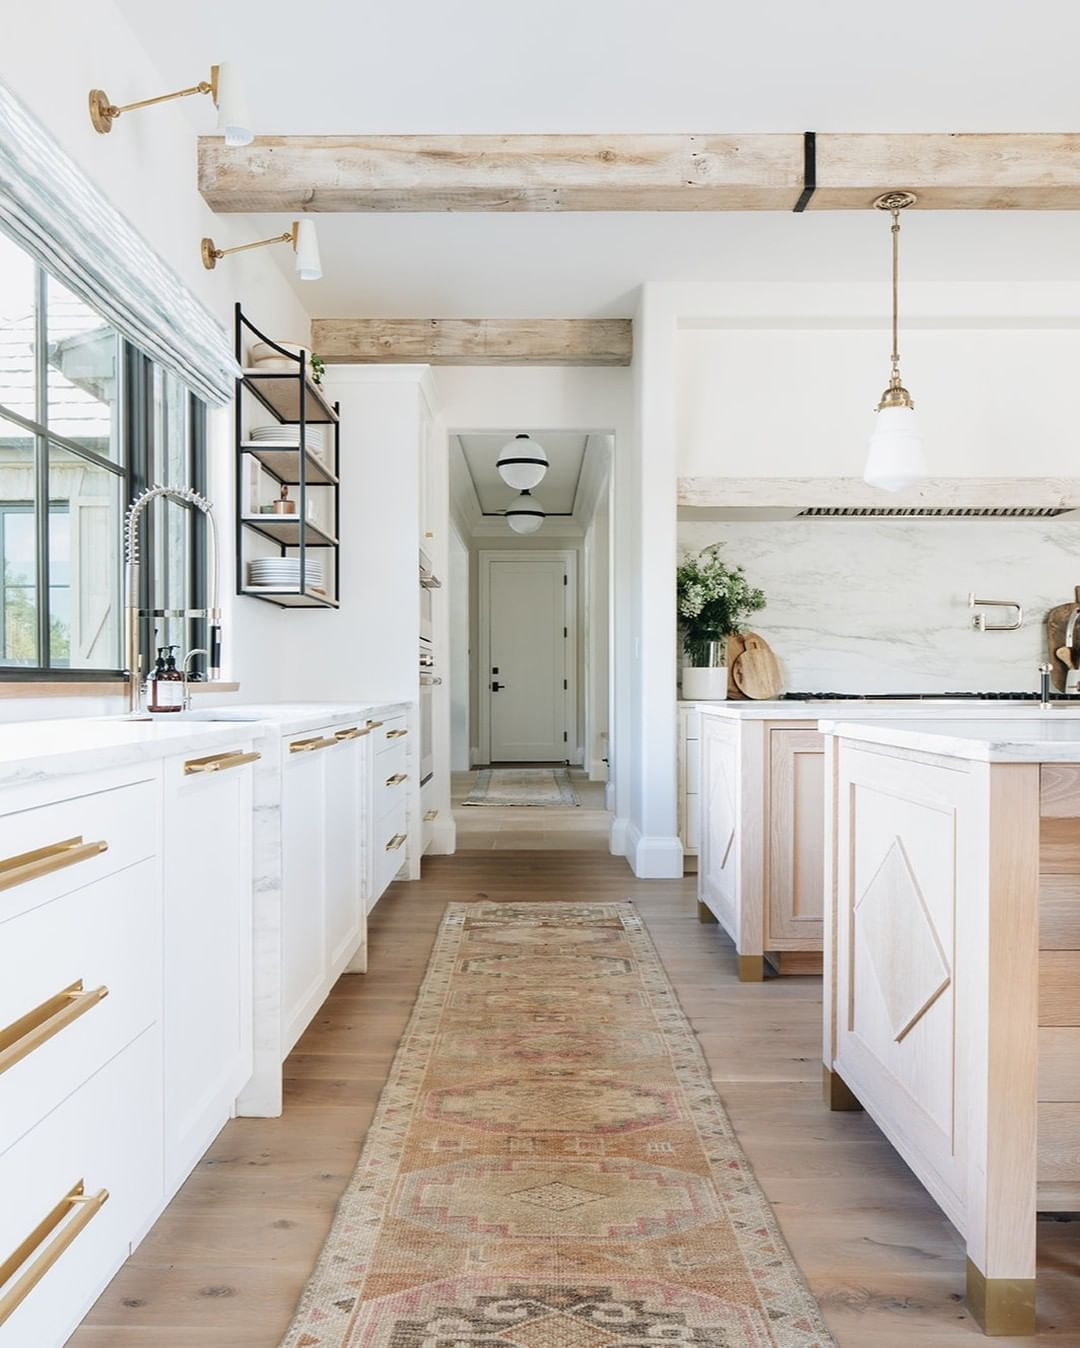 "Kate Marker Interiors on Instagram: ""The warmth of this sun soaked kitchen has us smiling as we head into the weekend. #hallwaytoheavenclient #kmidesignstyle 